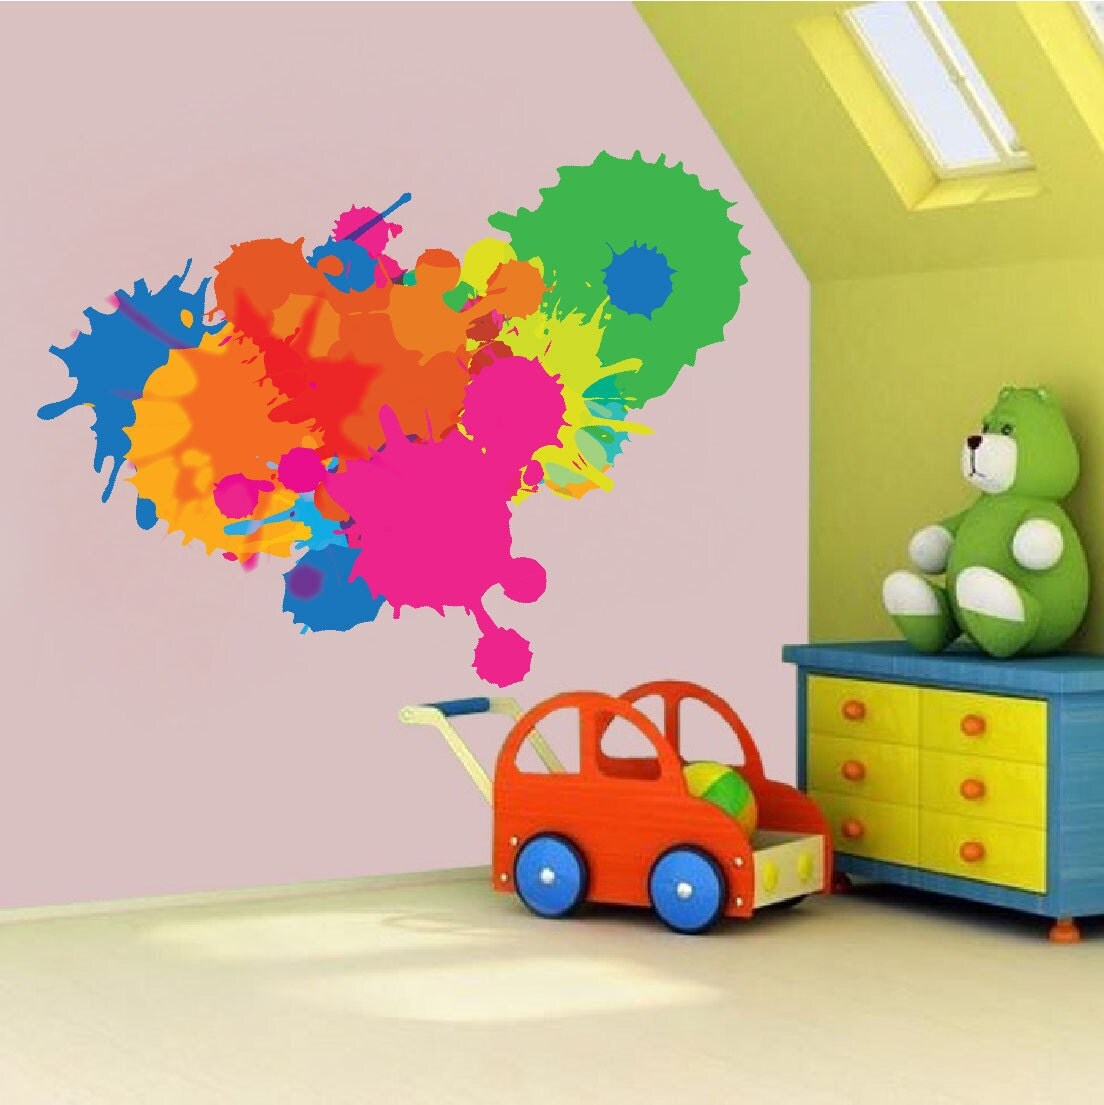 Color decal color splash wall decal paint splash decal zoom amipublicfo Images